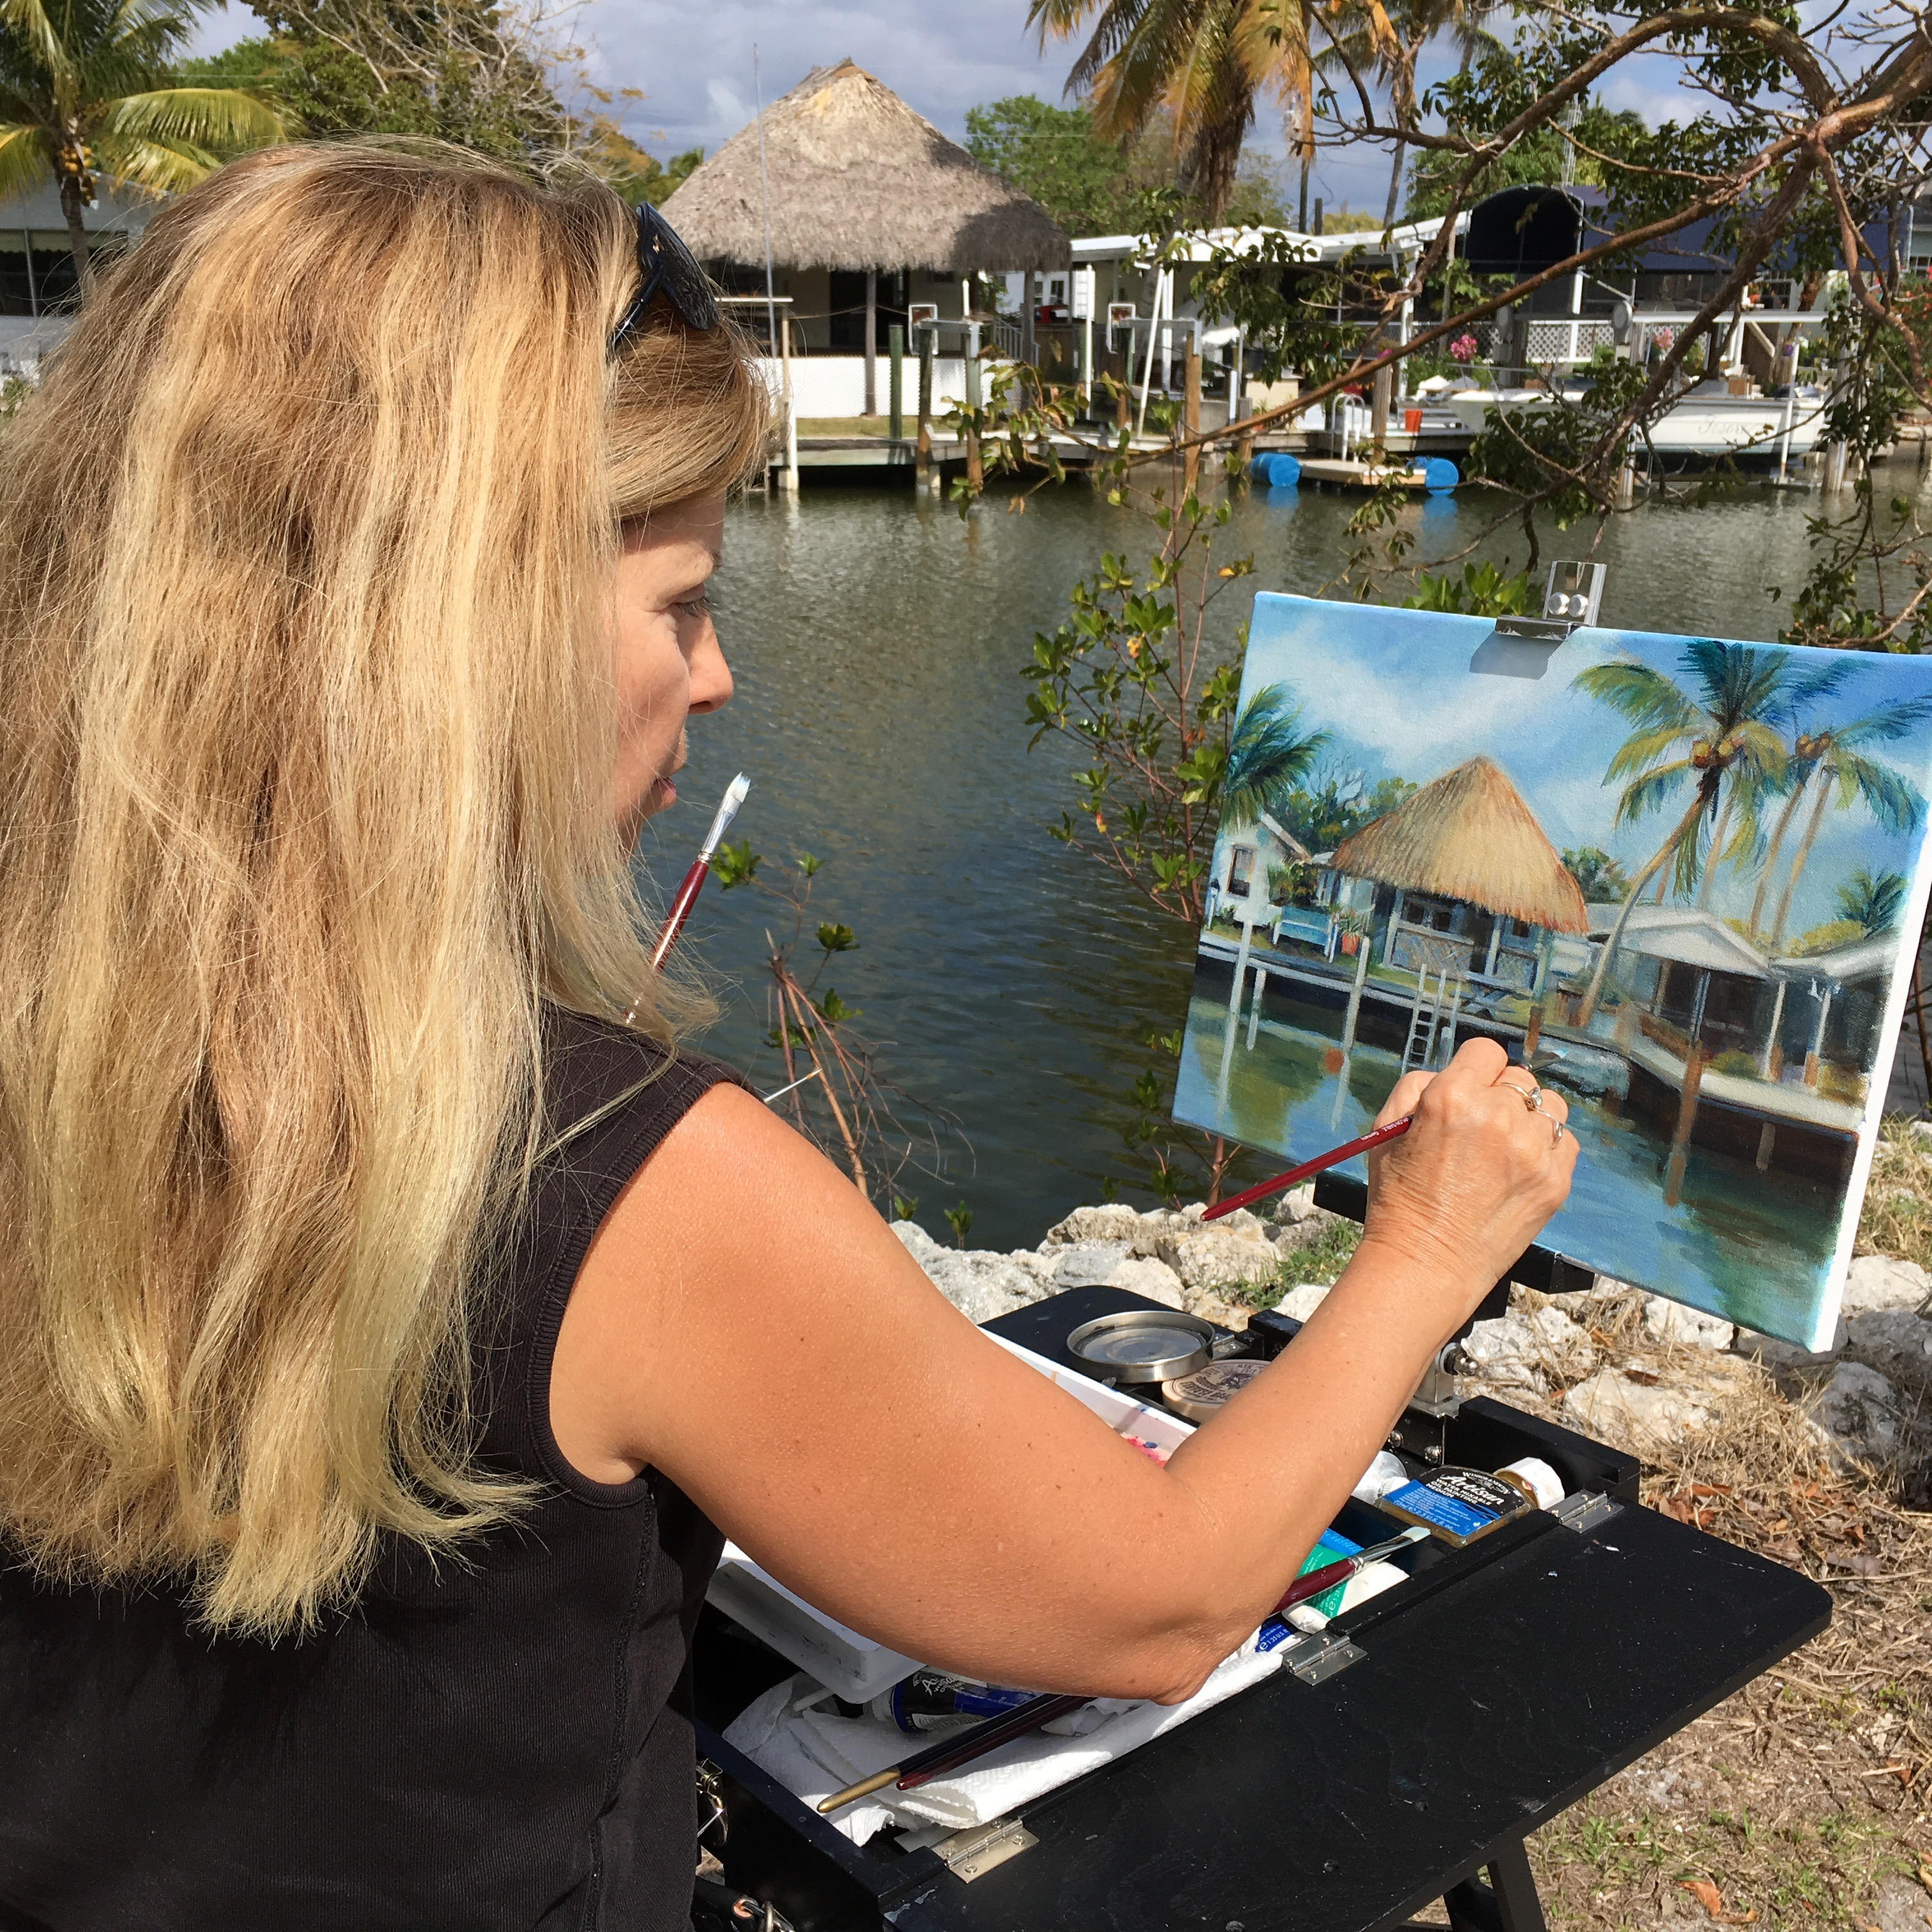 Plein air painting in Goodland, Florida.